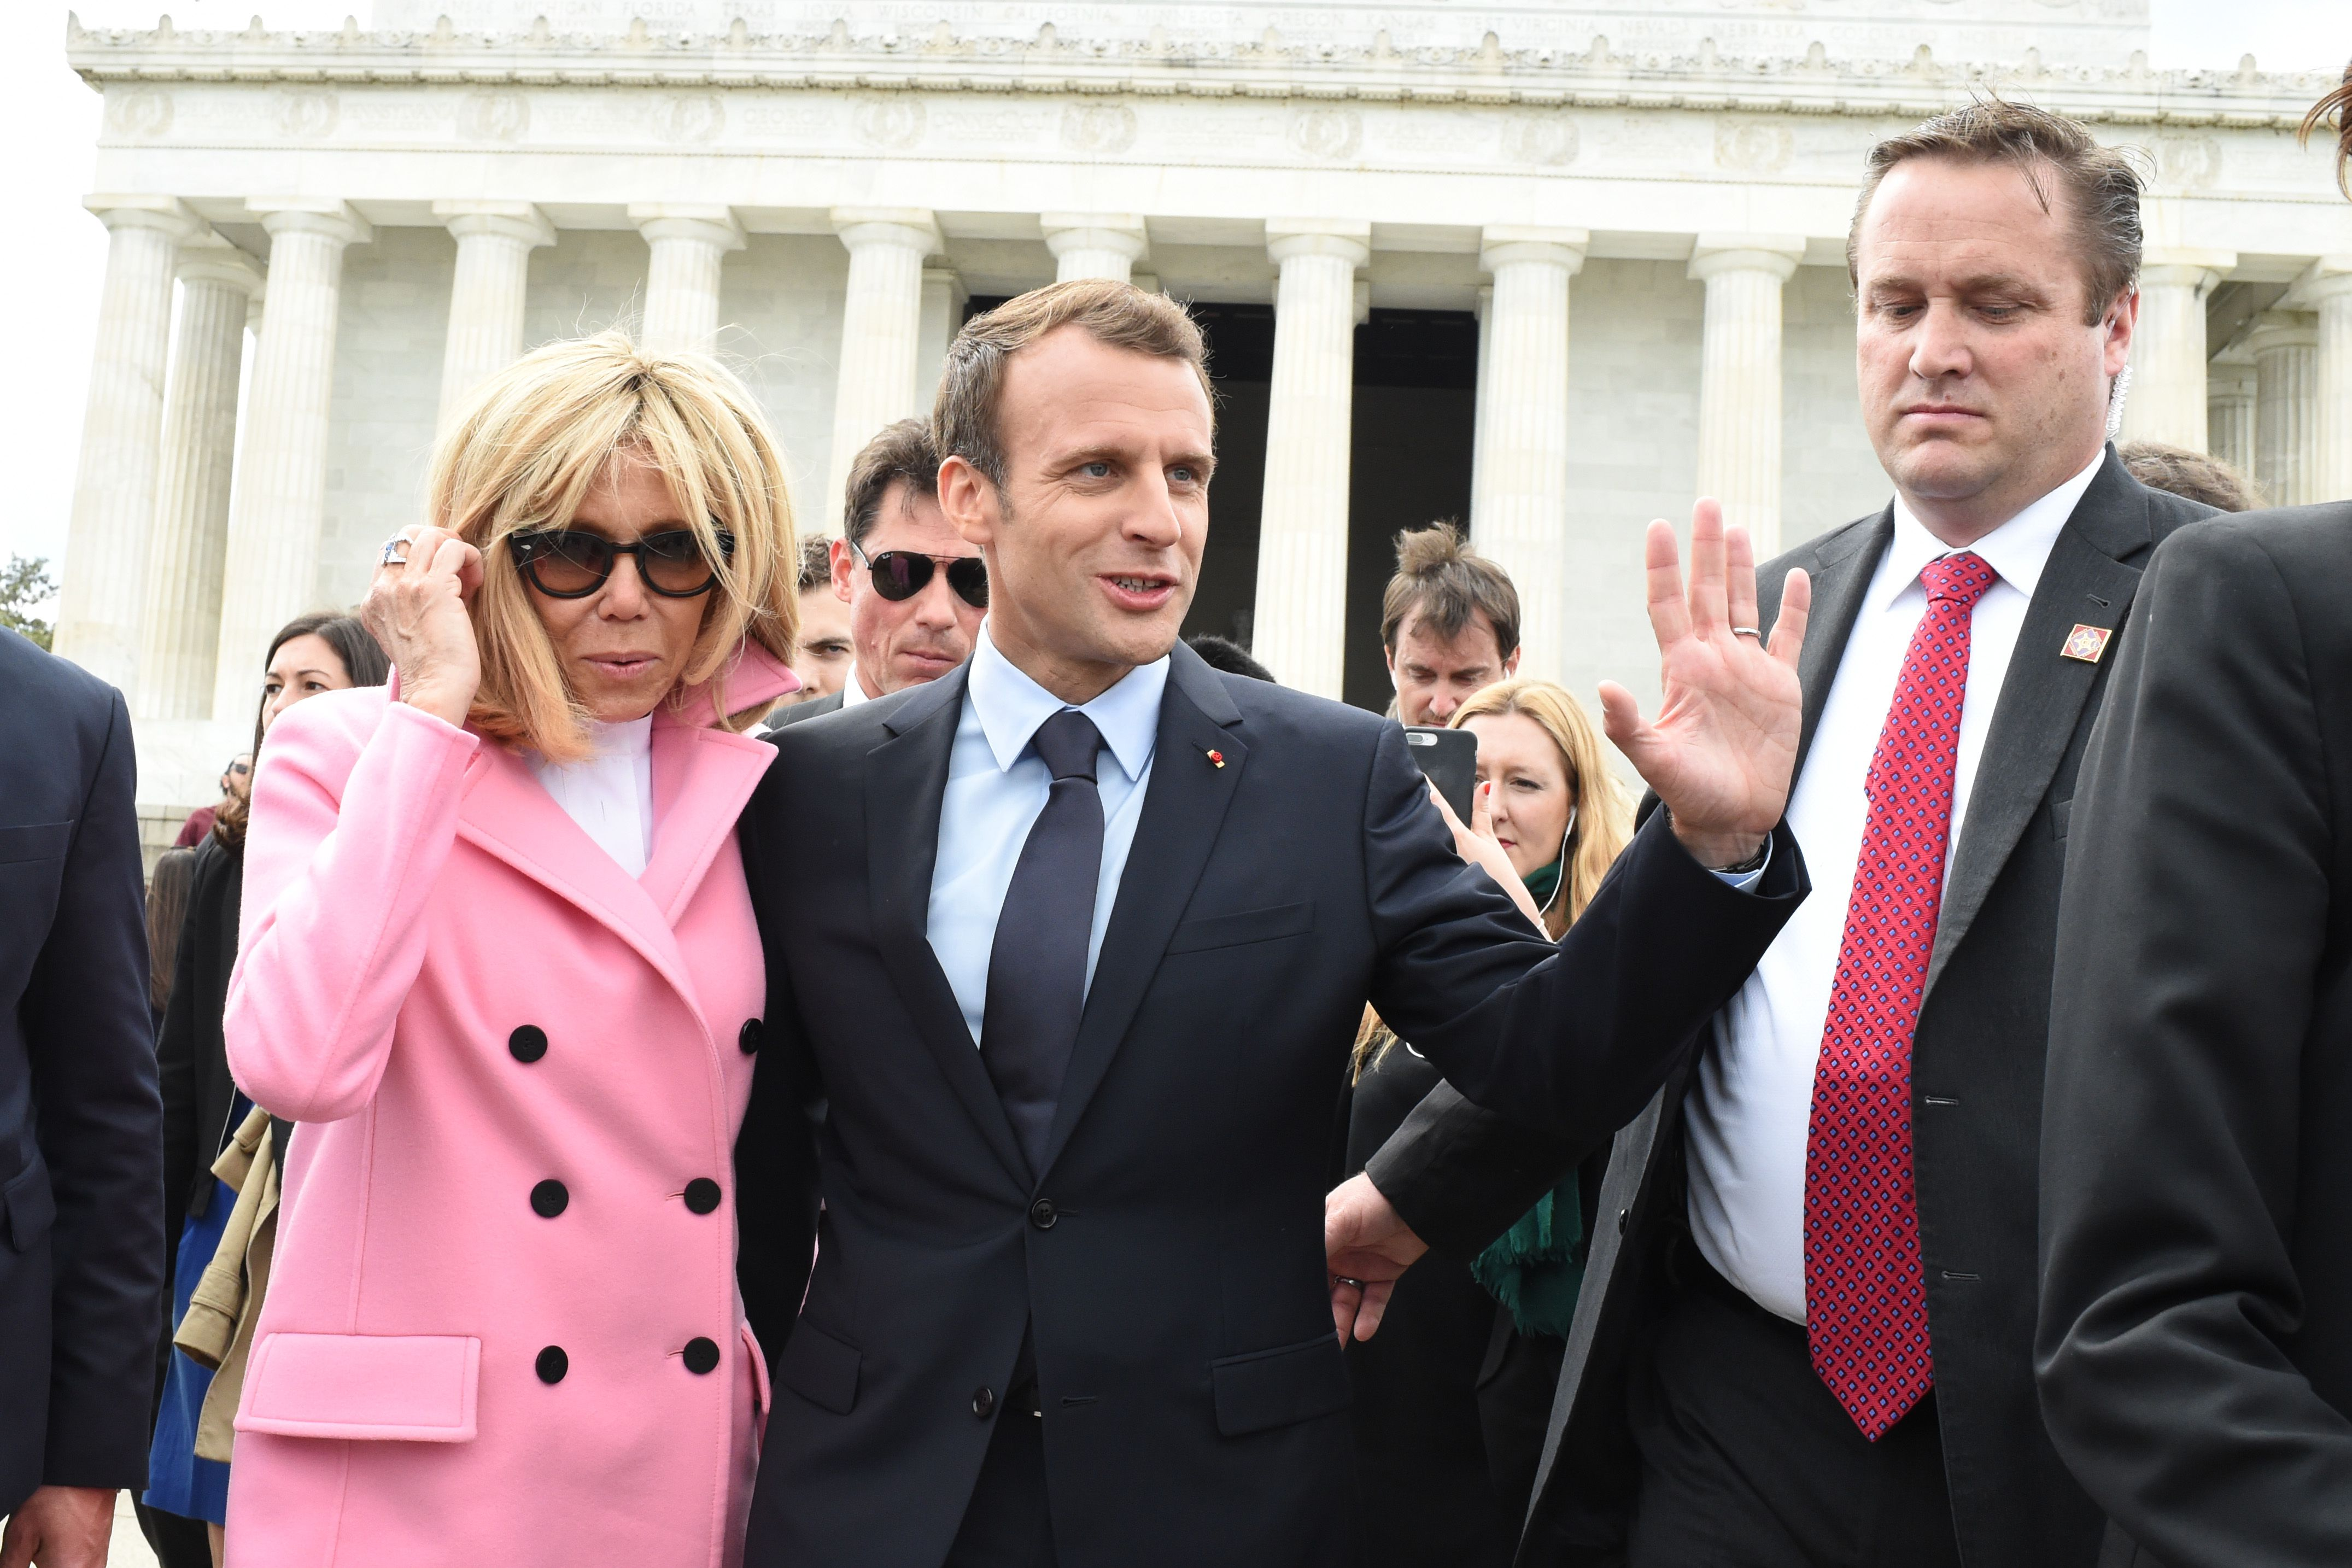 French President Emmanuel Macron and his wife Brigitte Macron smile and wave in front of the Lincoln Memorial.